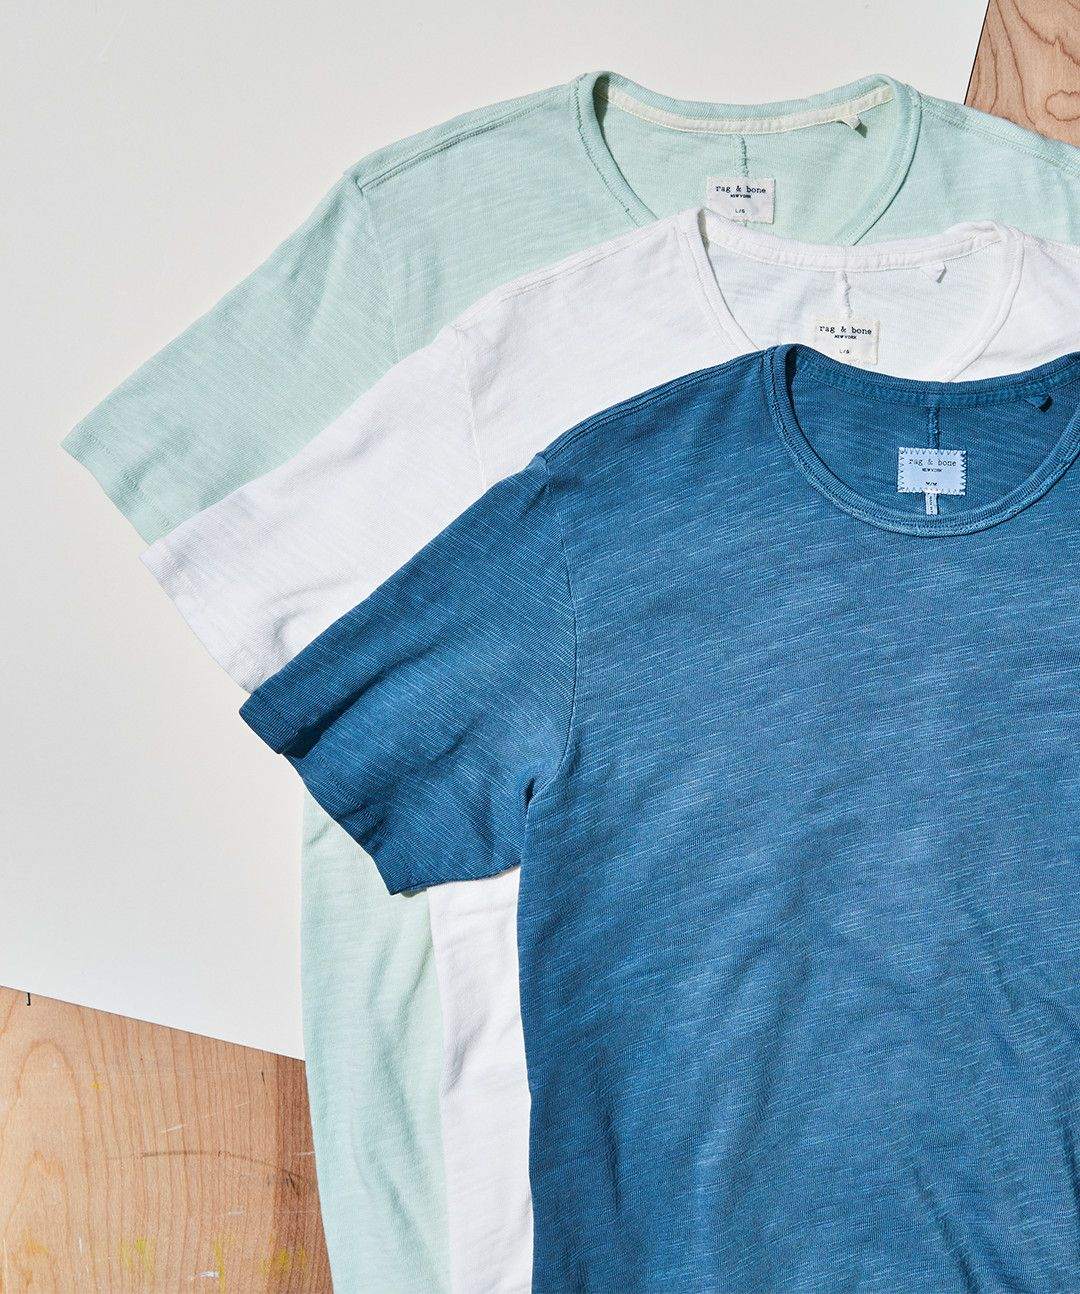 The T-Shirt That Proves a T-Shirt Can, In Fact, Be Perfect